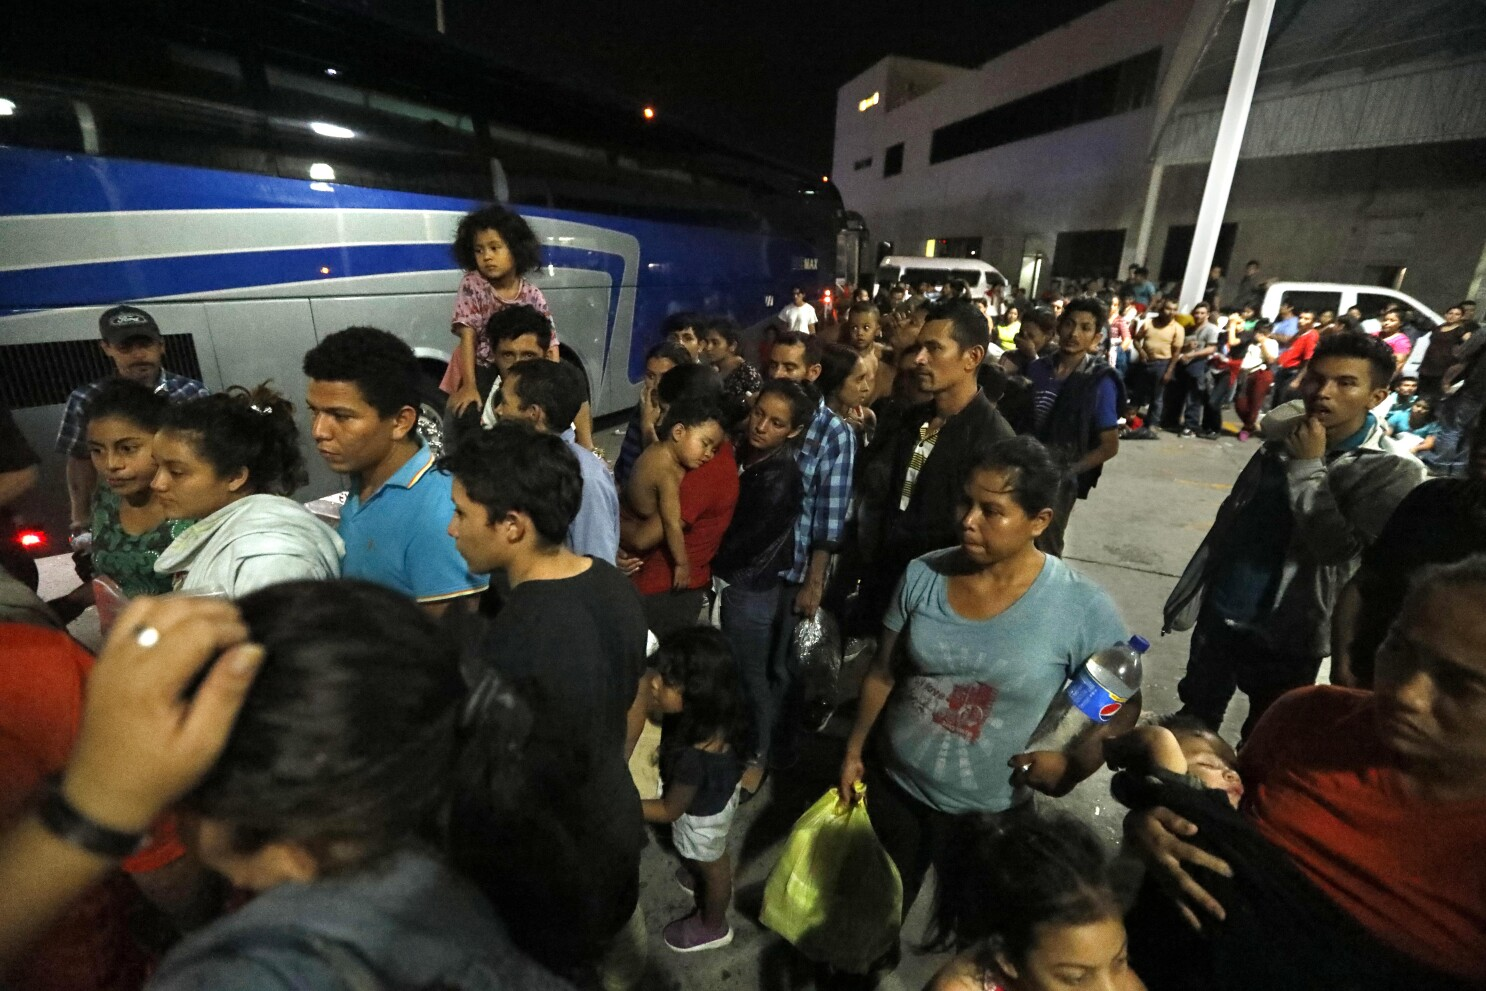 Stymied by U.S. asylum policies, many migrants on the border are heading home